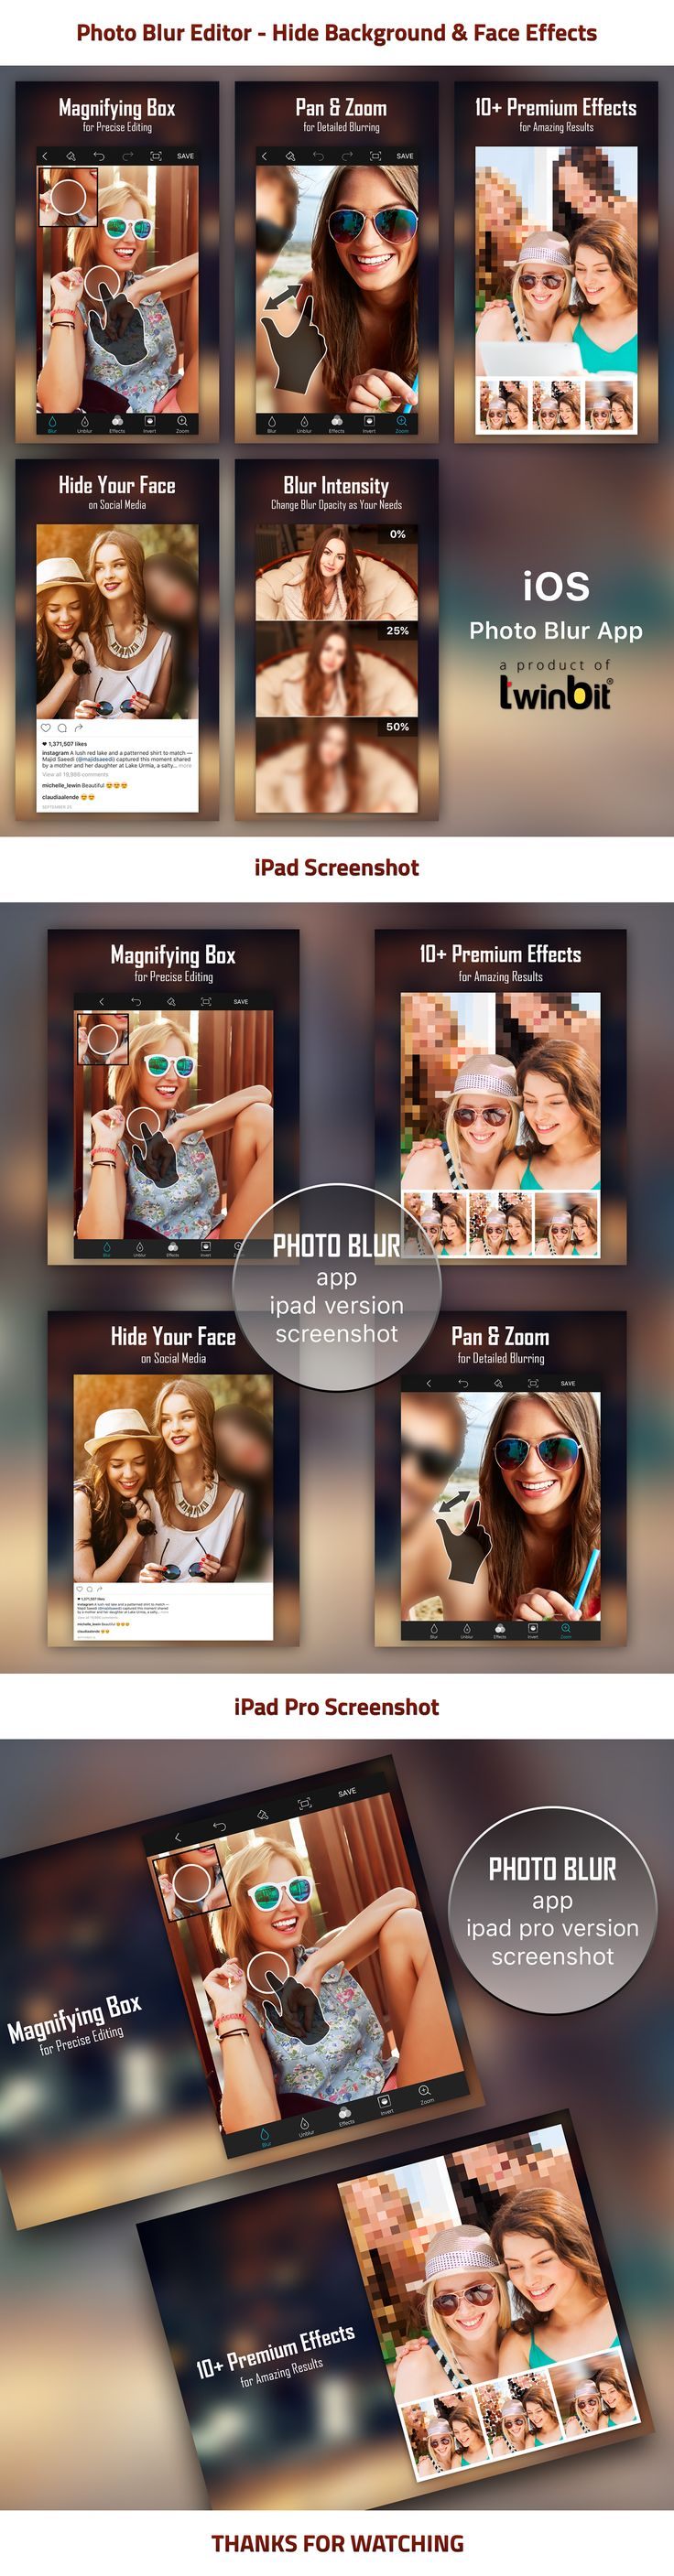 "Check out my @Behance project: ""Photo Blur Editor App"" https://www.behance.net/gallery/45340375/Photo-Blur-Editor-App"